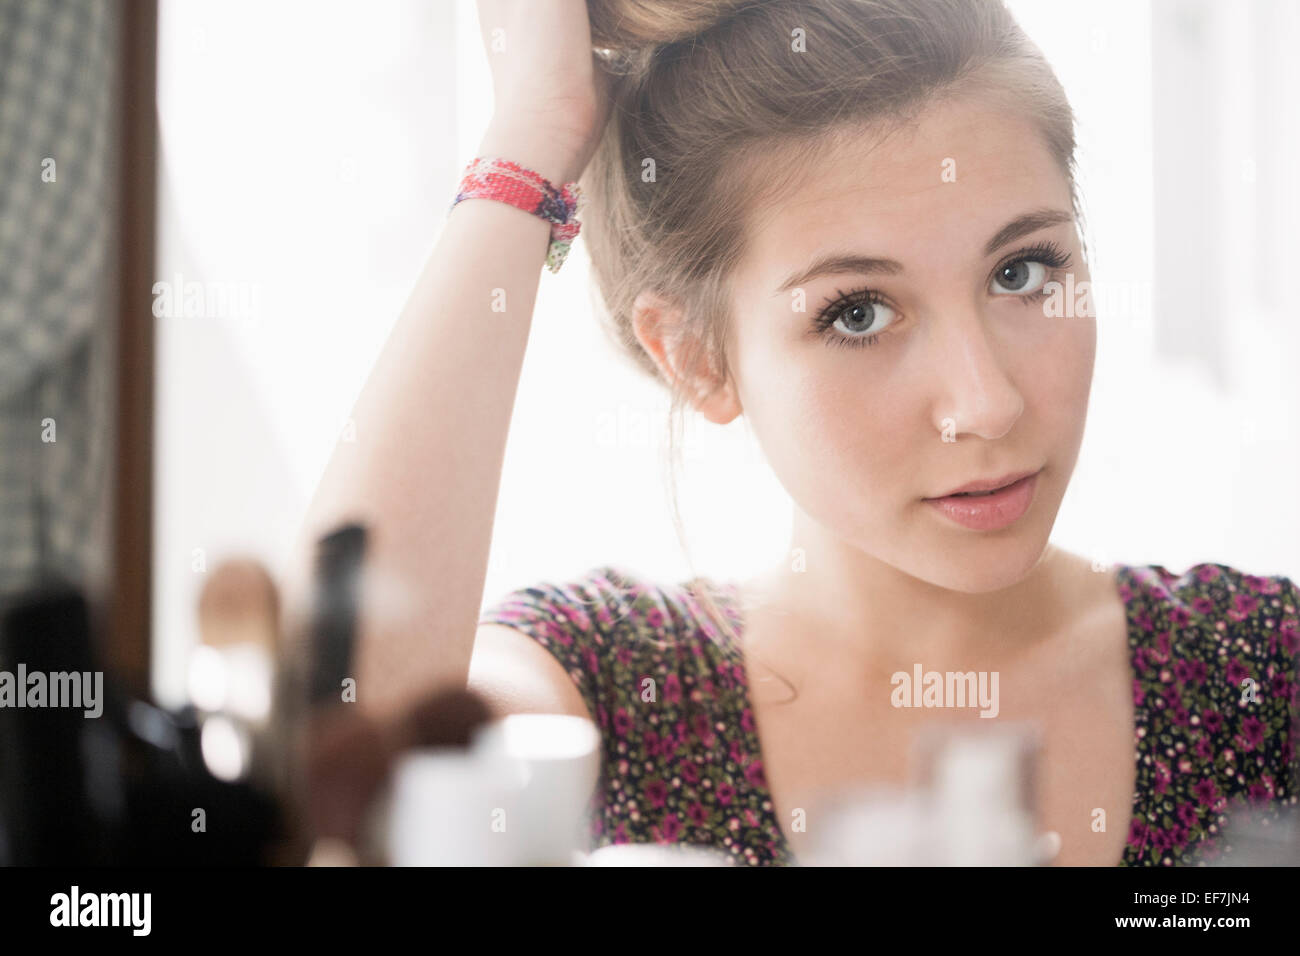 Teenage girl looking at mirror - Stock Image